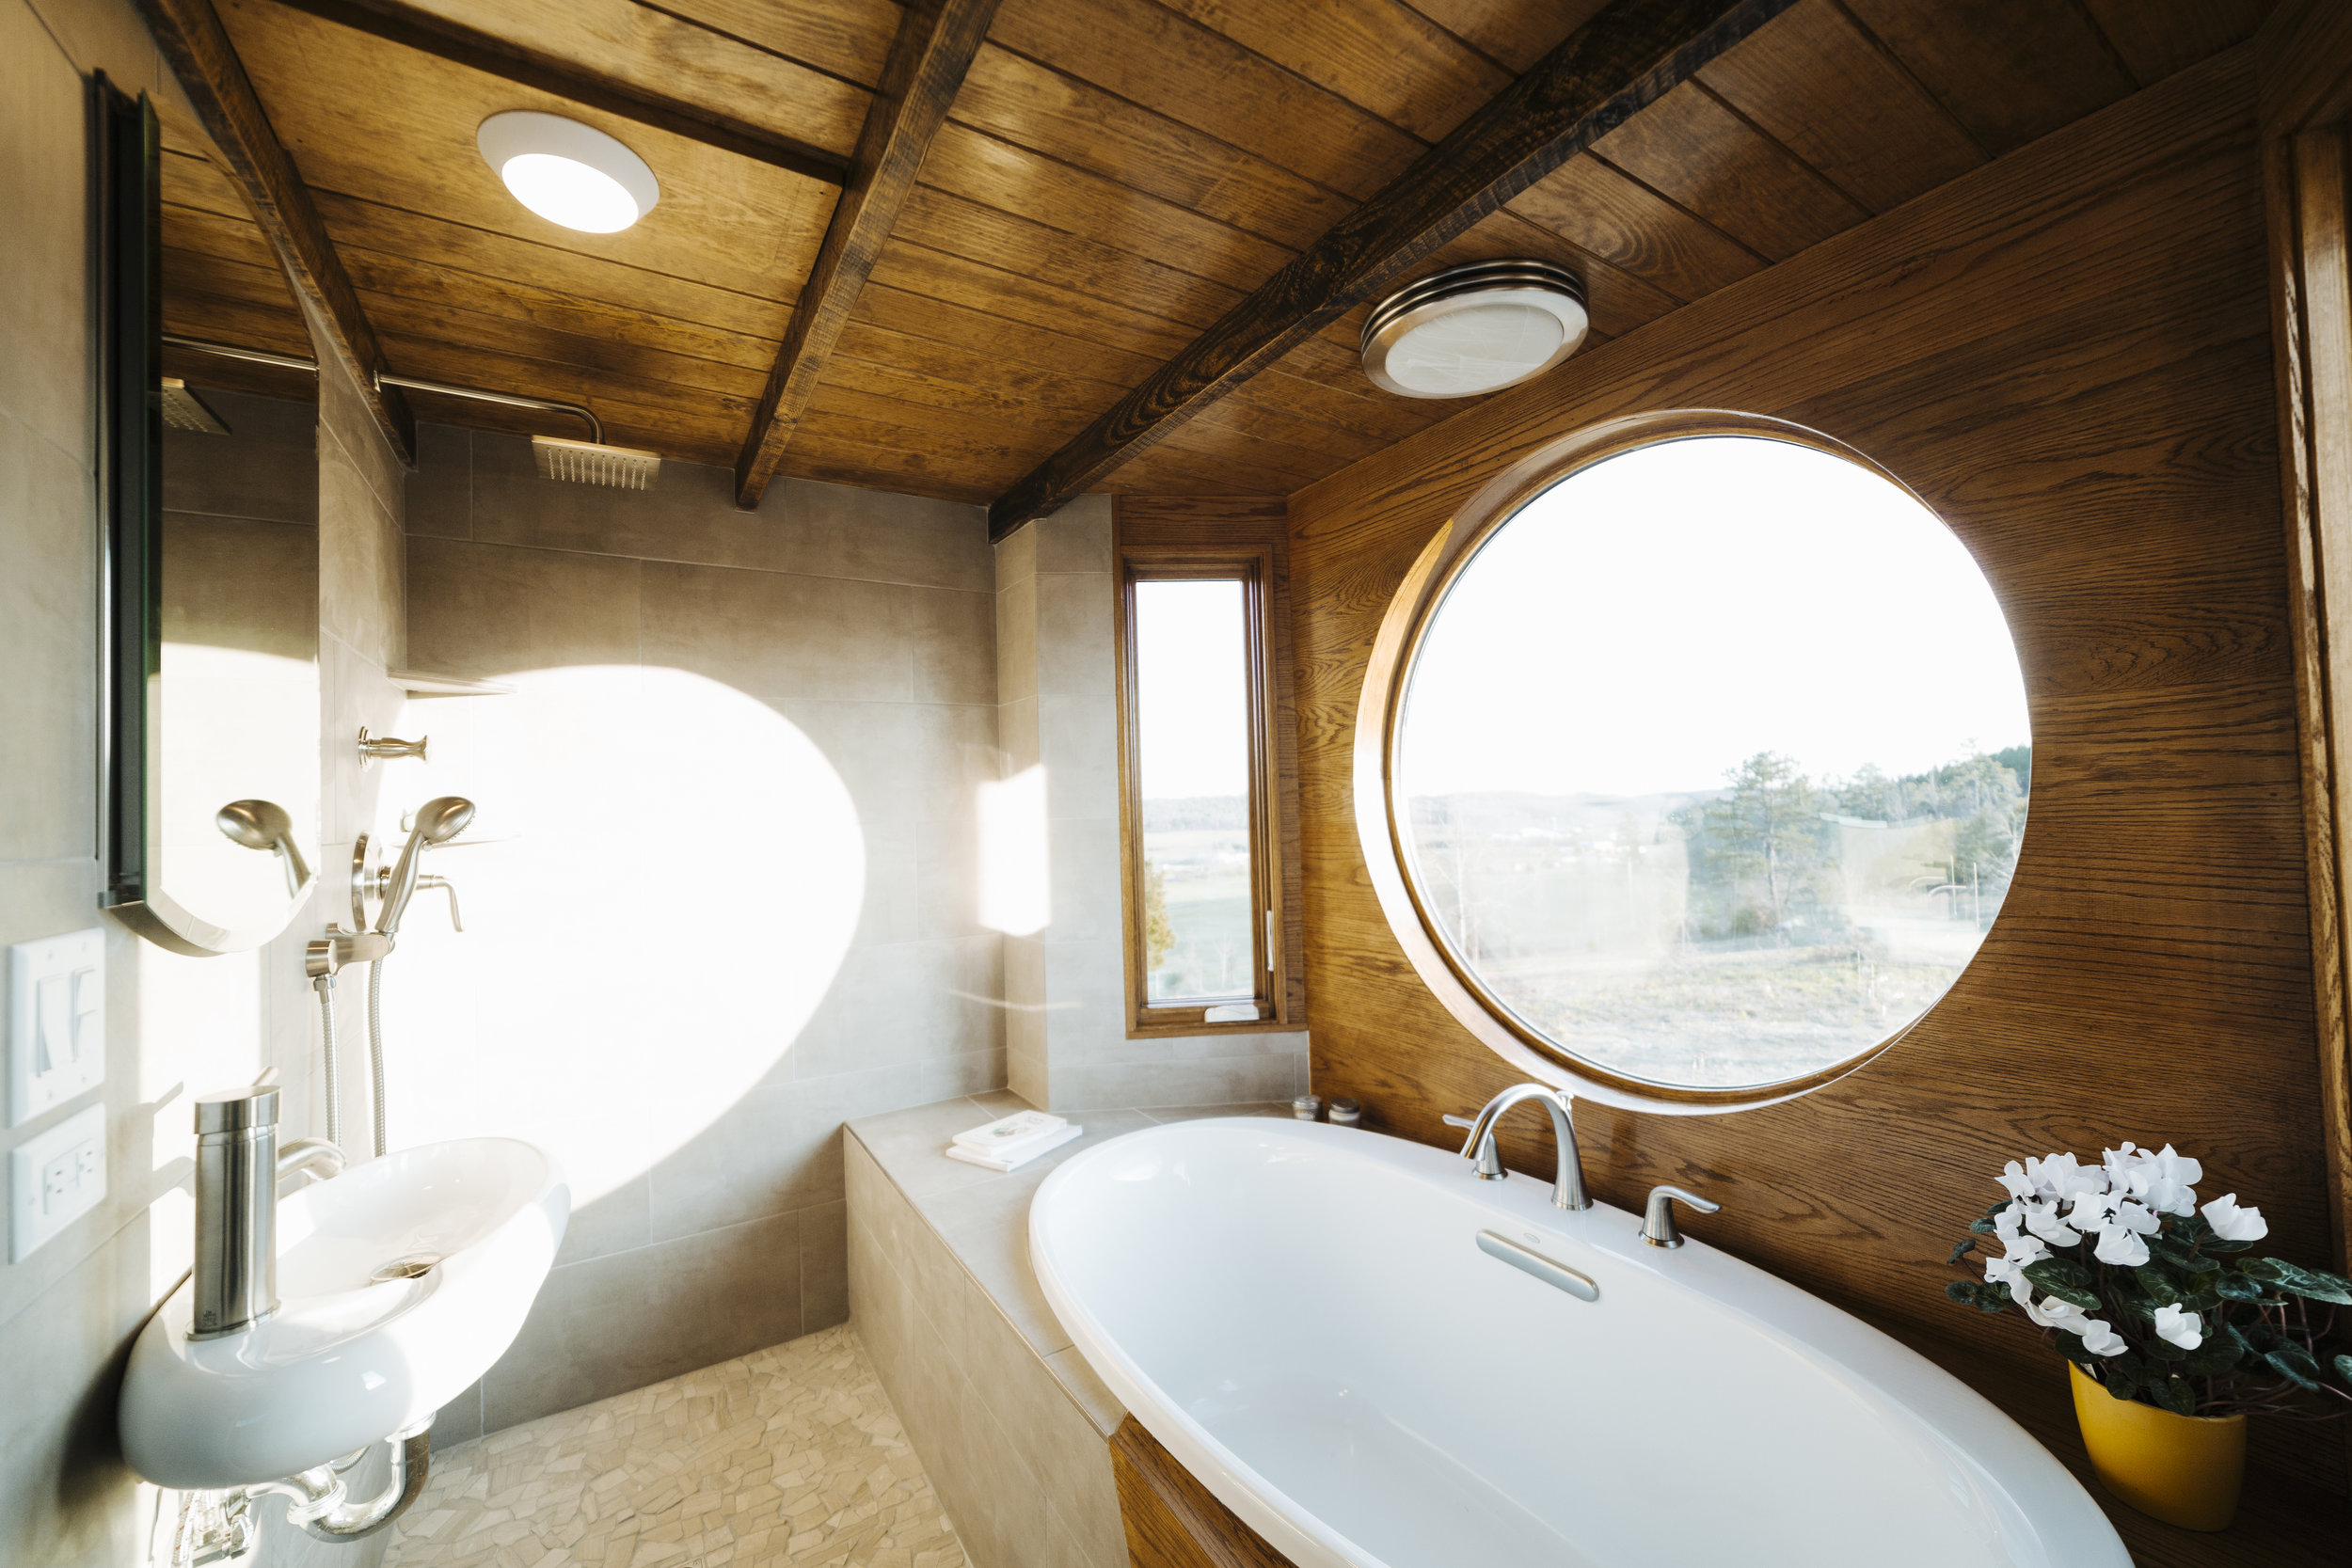 The Monocle by Wind River Tiny Homes - bath tub, wet bath, mixed tile and oak tub surround, pebble tile floor, floating sink, rain shower head, hand held shower